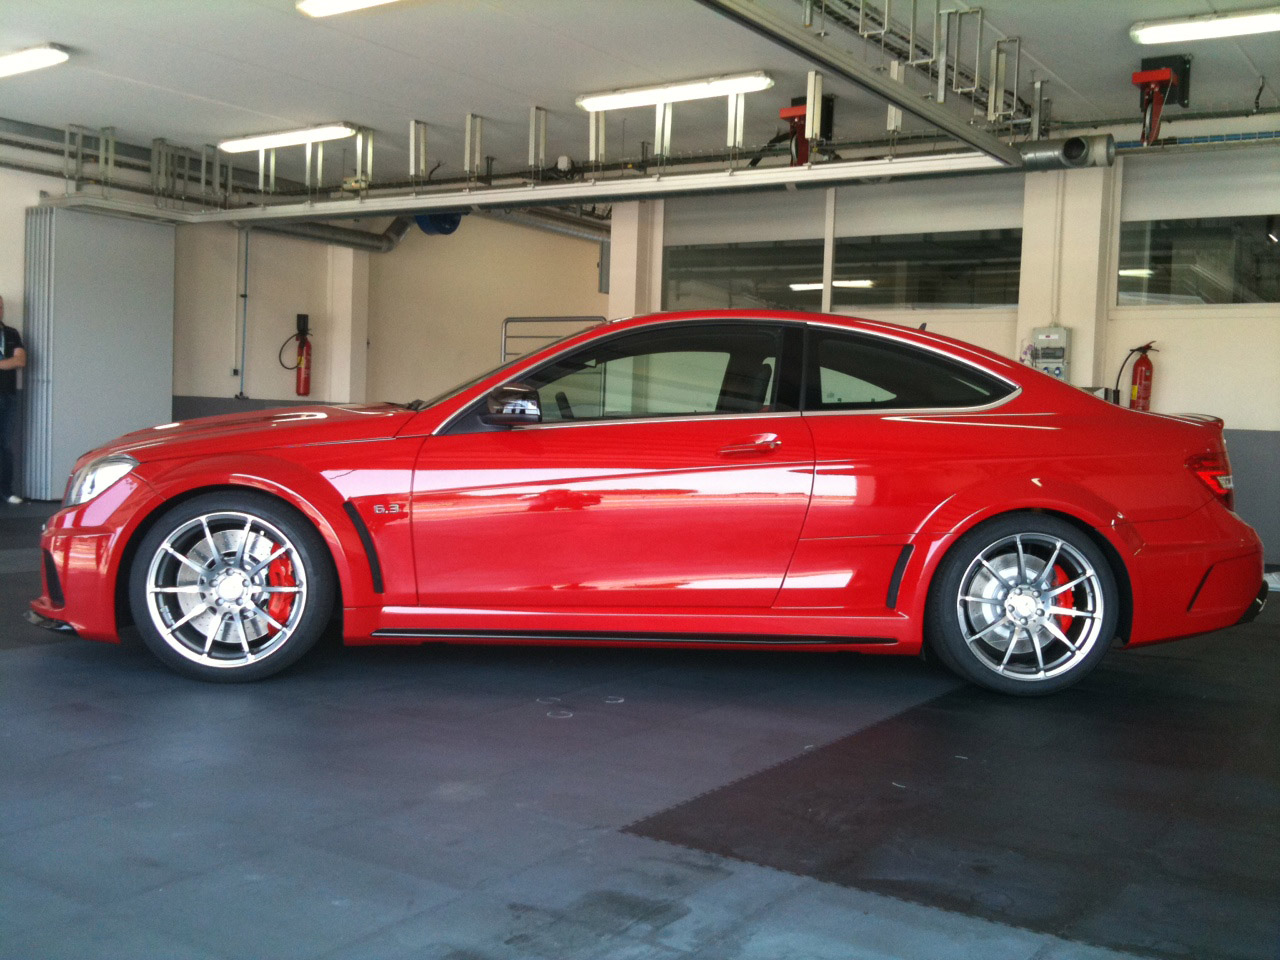 New 2012 mercedes c63 amg black series coup exposed for 2012 mercedes benz c63 amg coupe black series